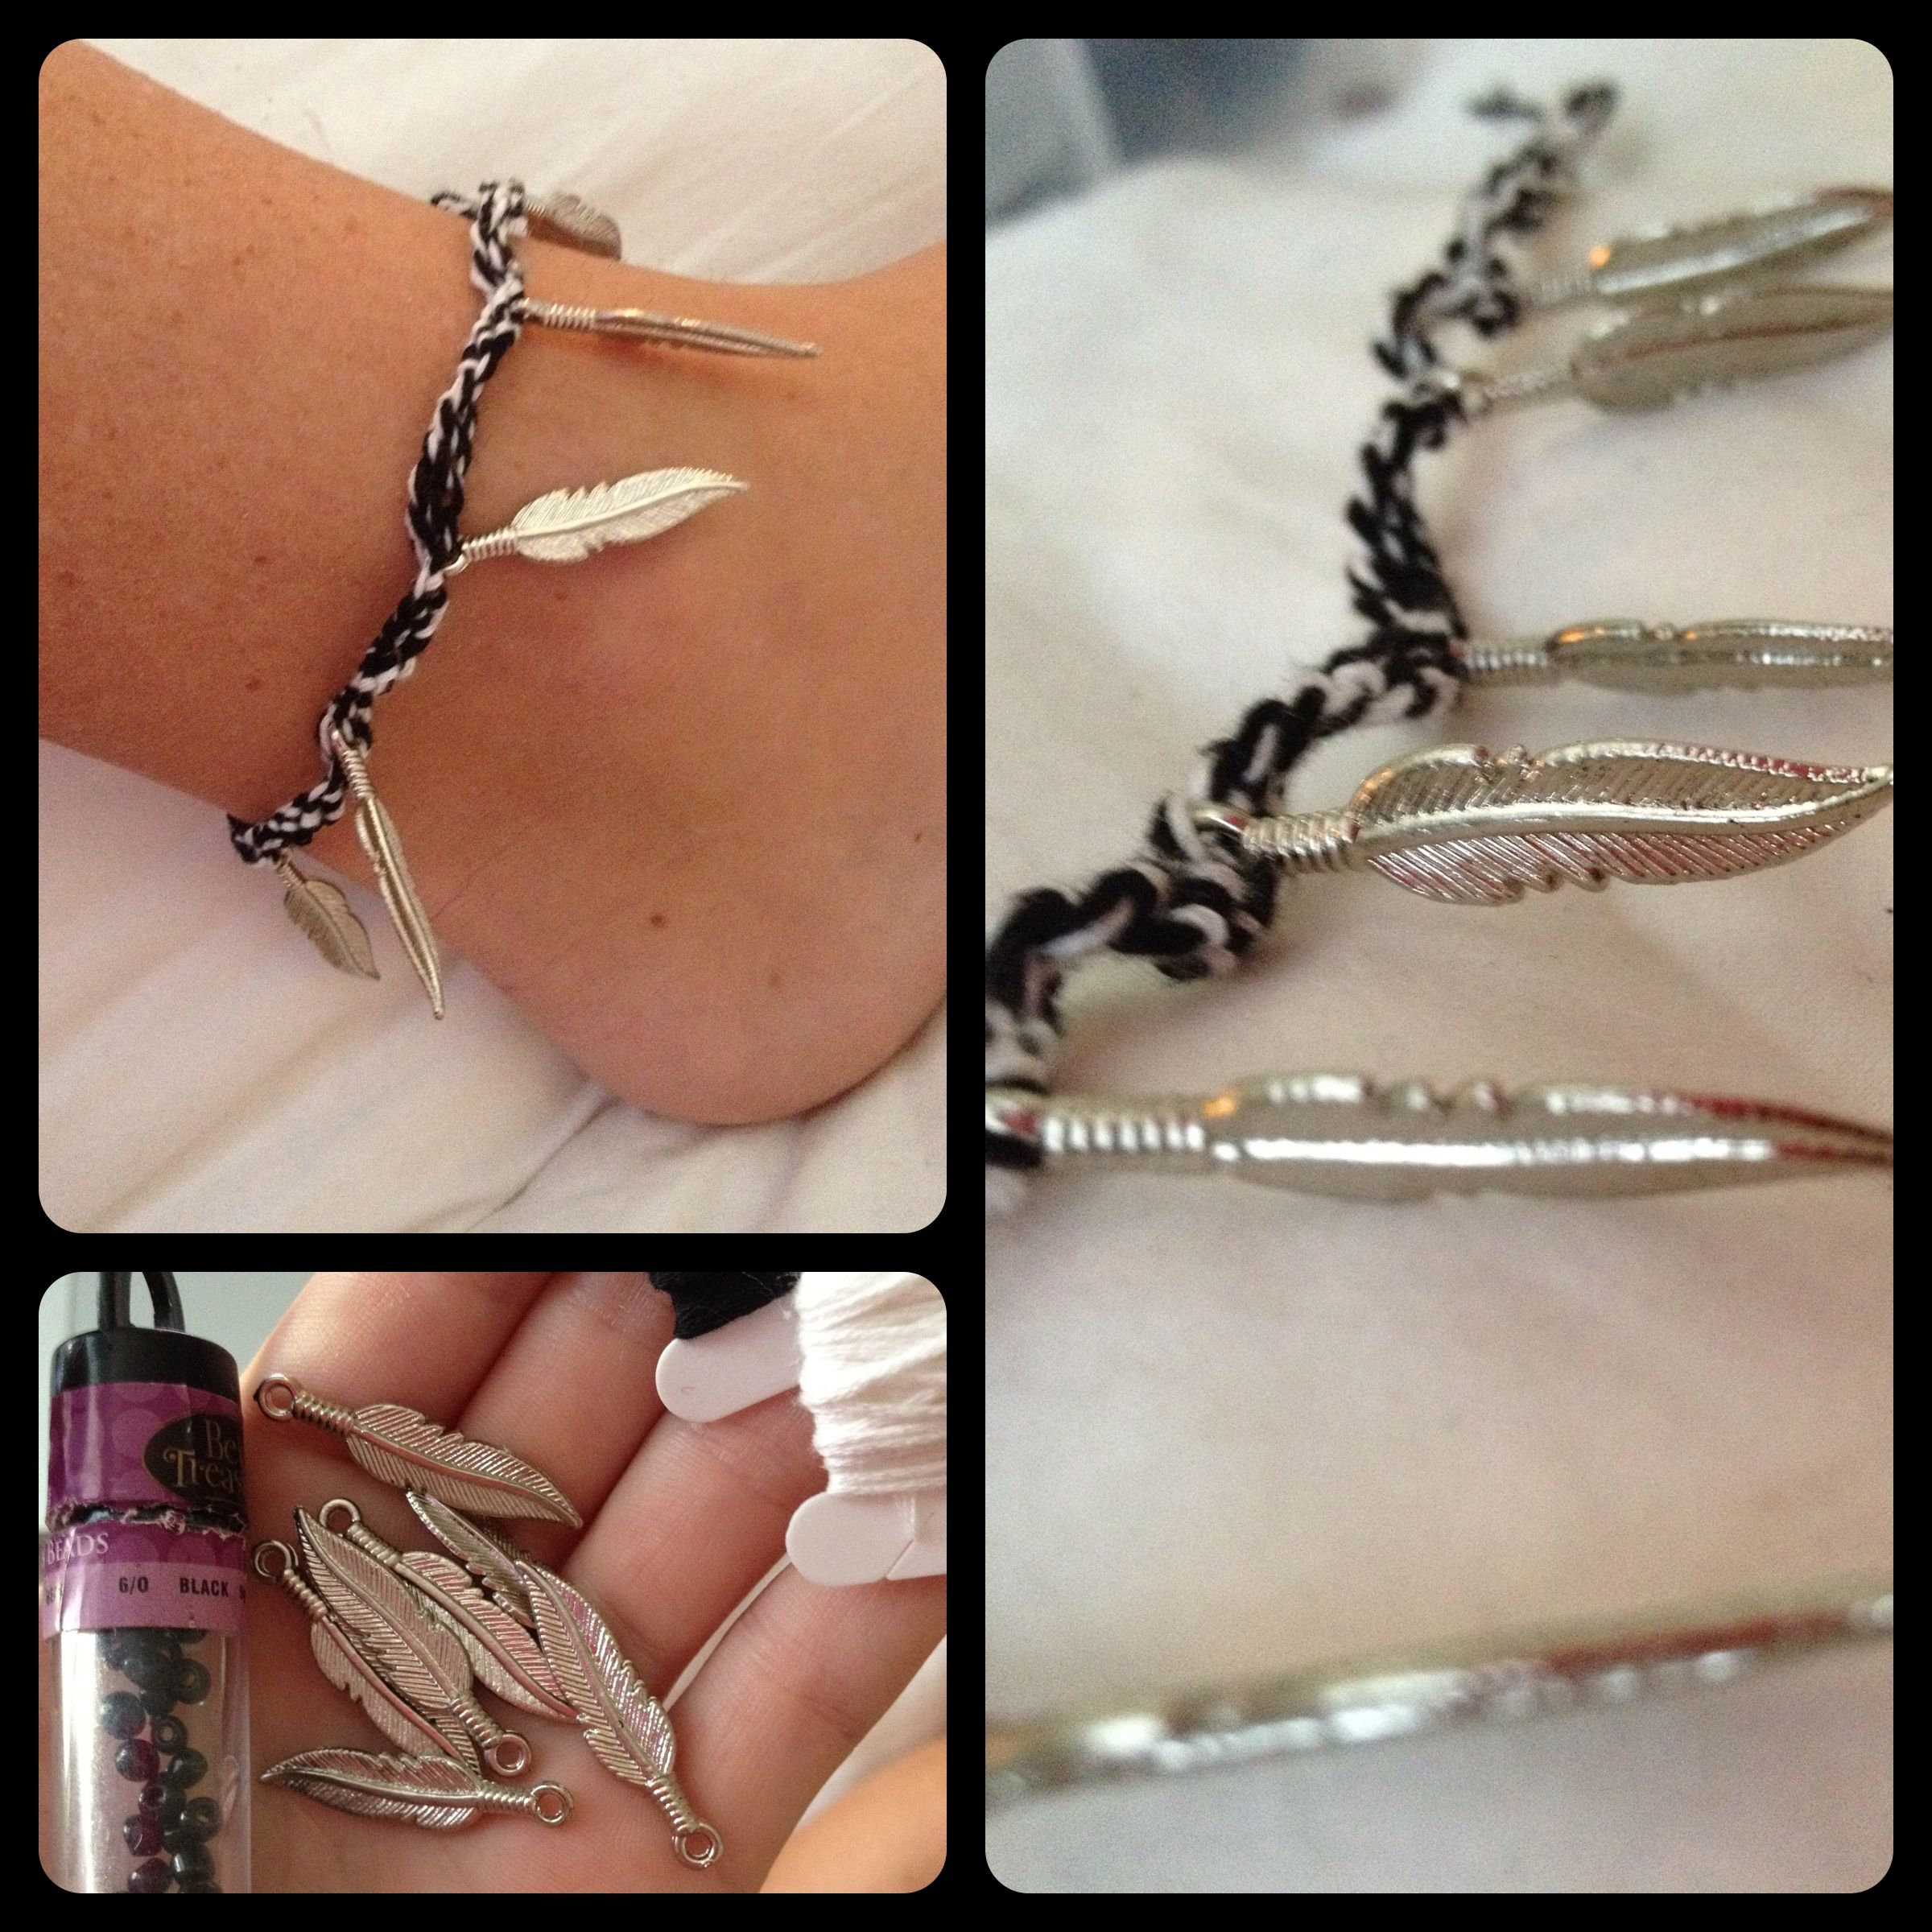 a pin anklet bracelets string the feather d chain instead with maybe silver copper of